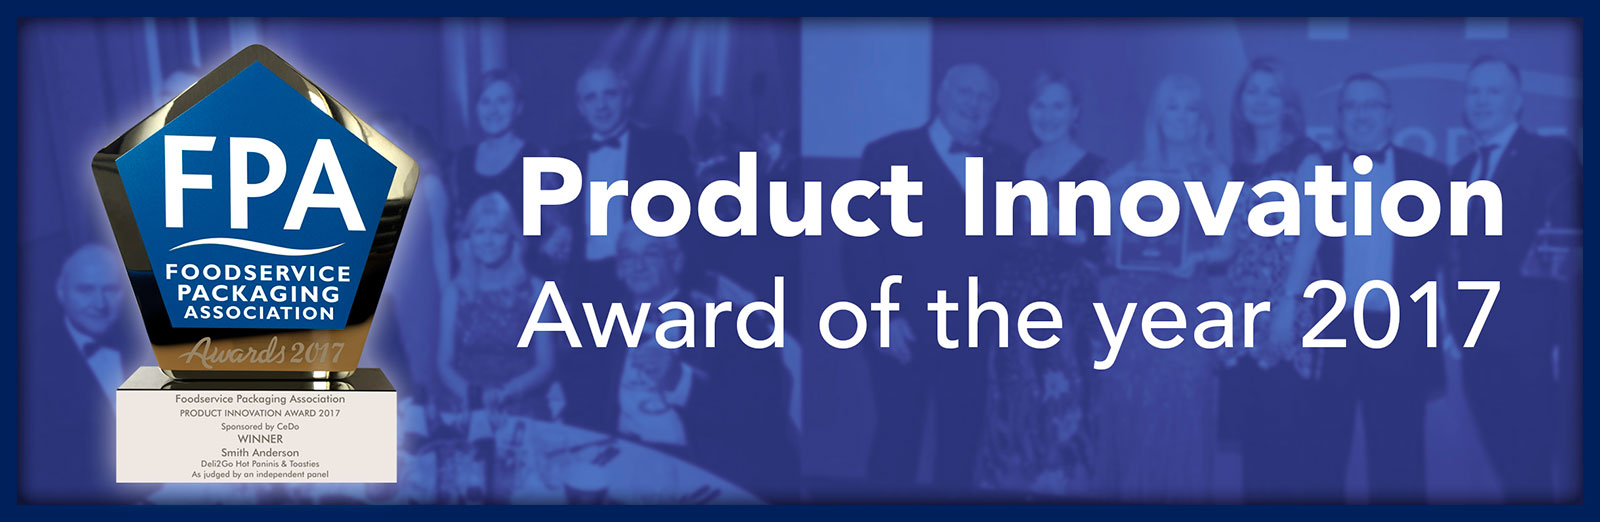 FPA Product Innovation Award of the Year 2017